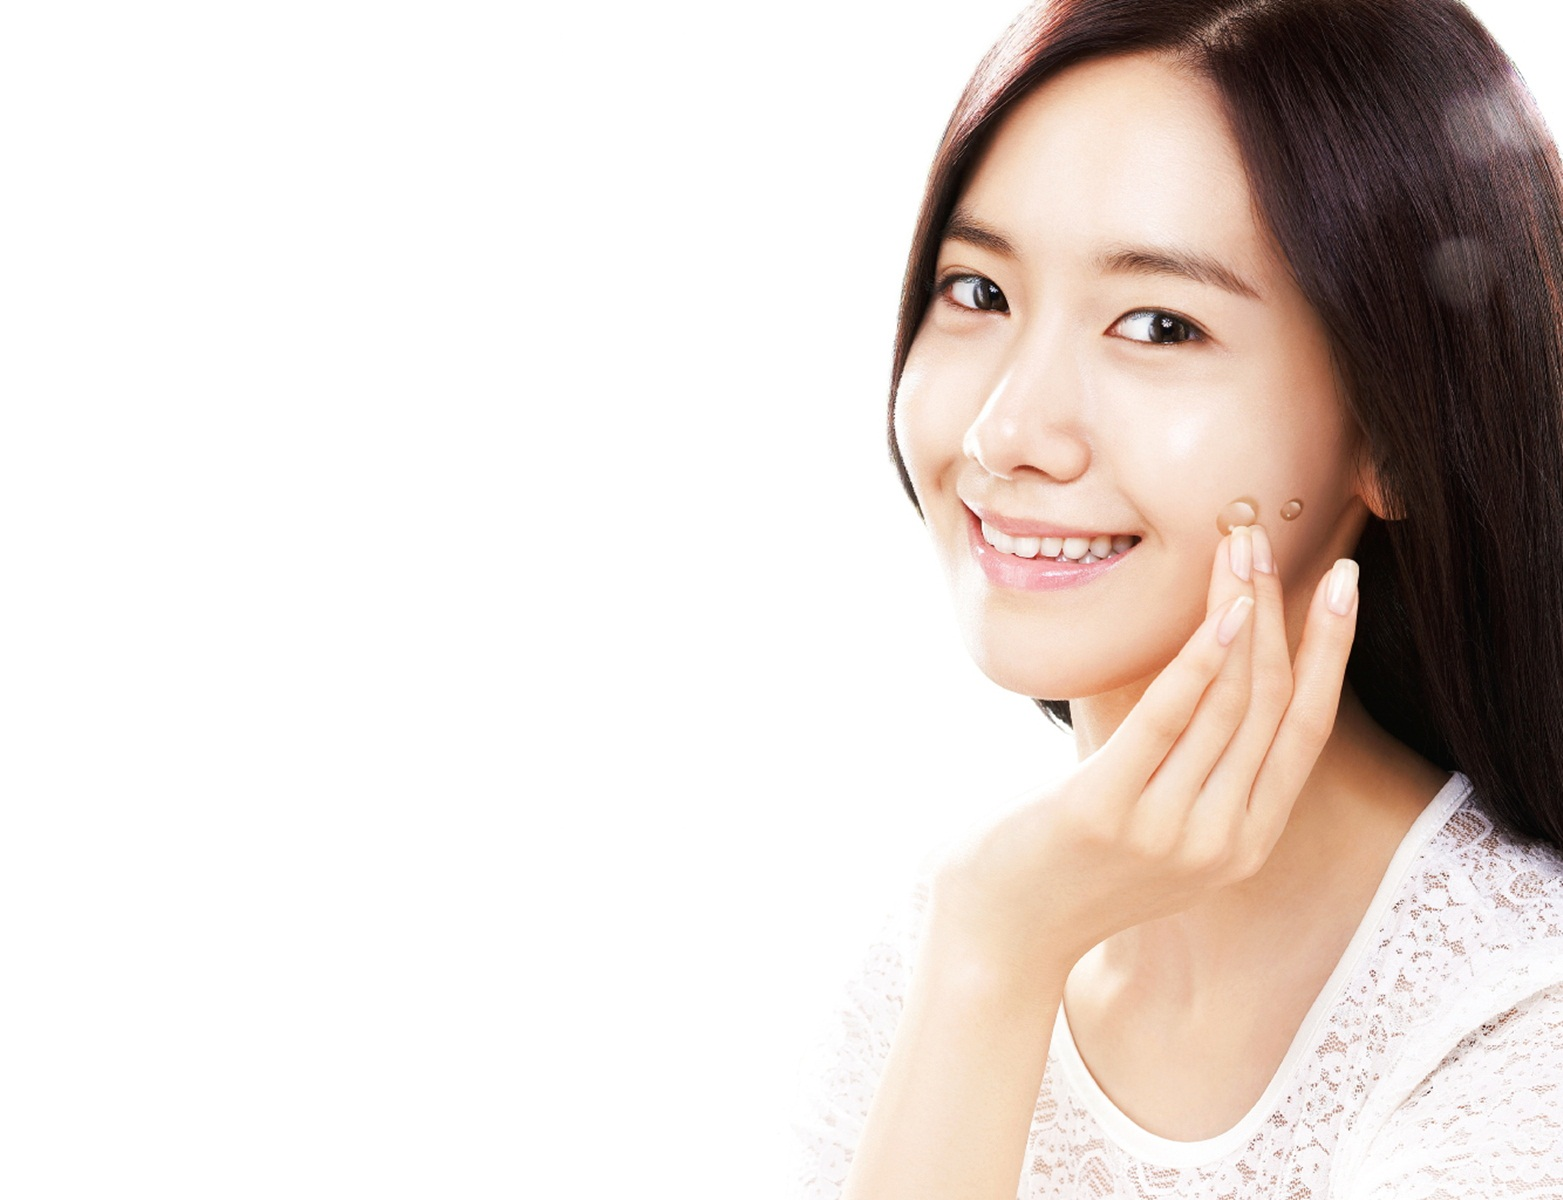 wallpaper hd 4 snsd yoona innisfree wallpaper hd 5 1563x1200